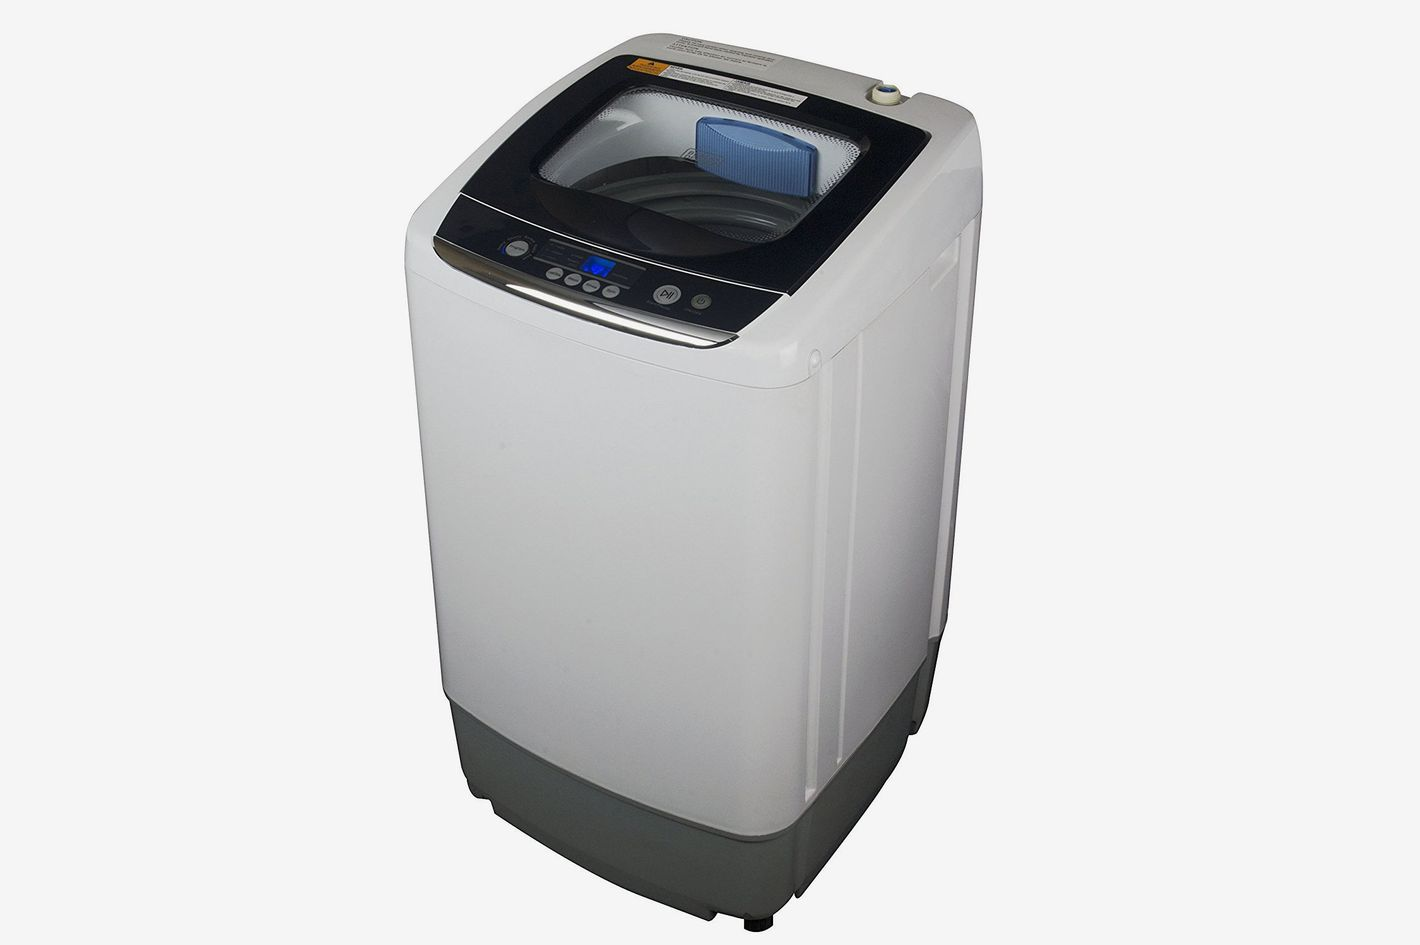 Black + Decker Portable Laundry Washing Machine